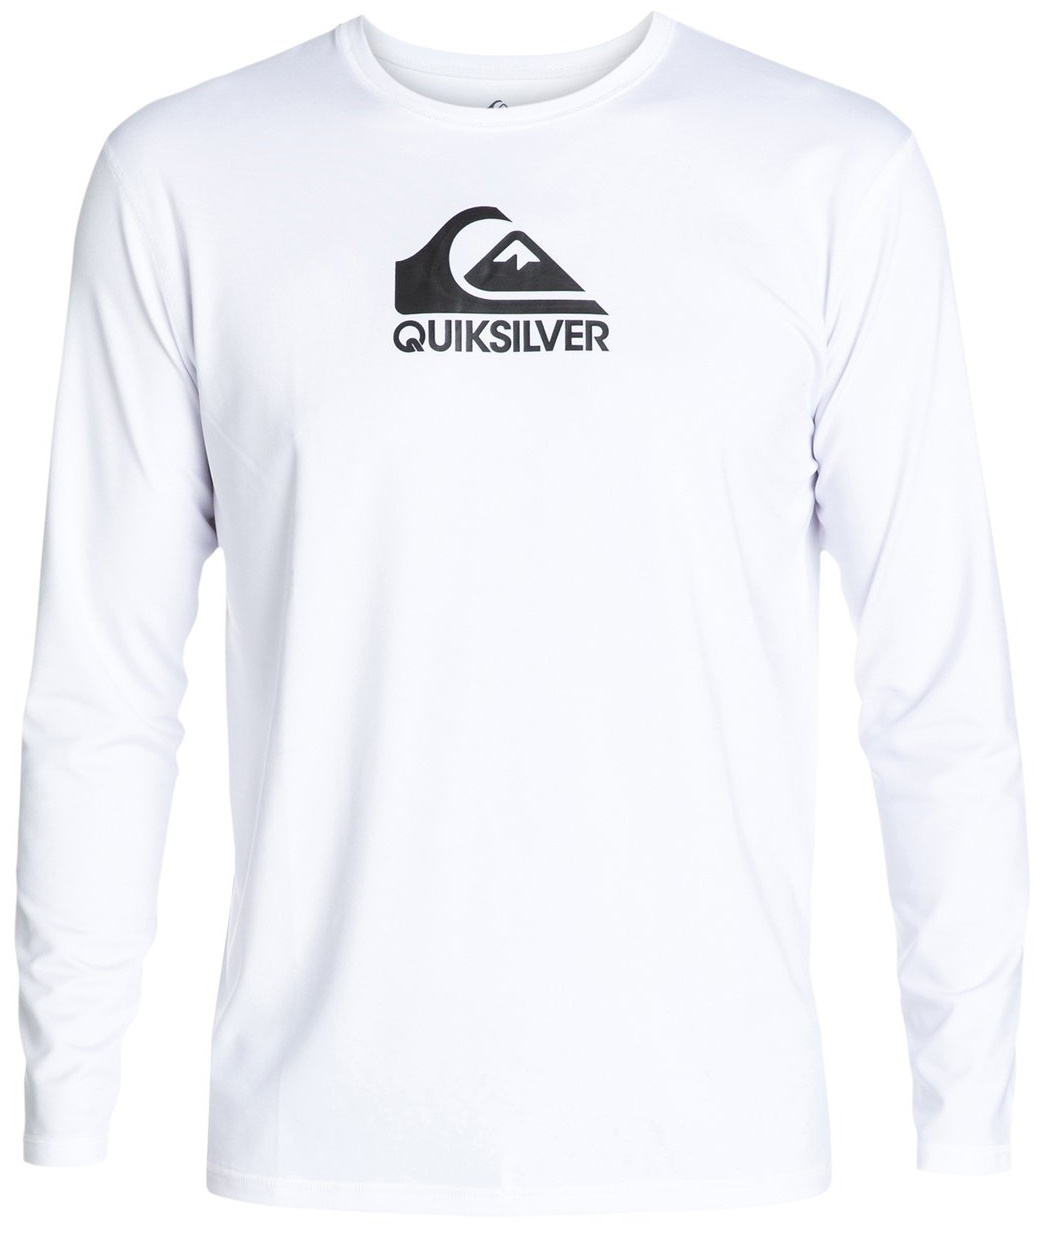 Quiksilver Men's Rashguard Long Sleeve Loose Fit  Solid Streak - White